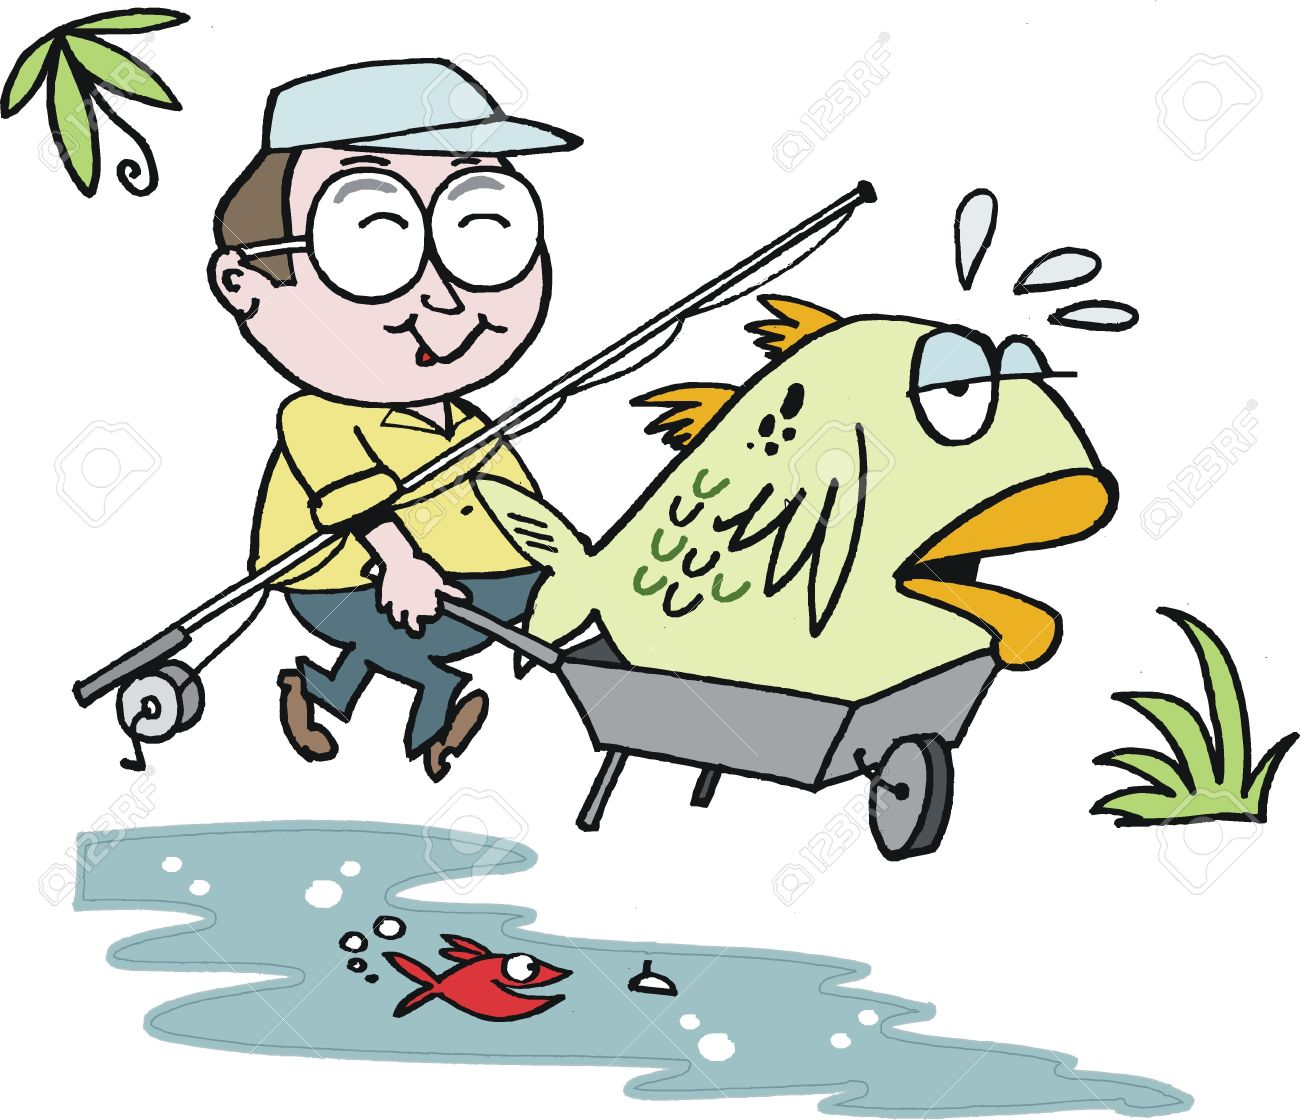 Fisherman clipart happy. Free x making the